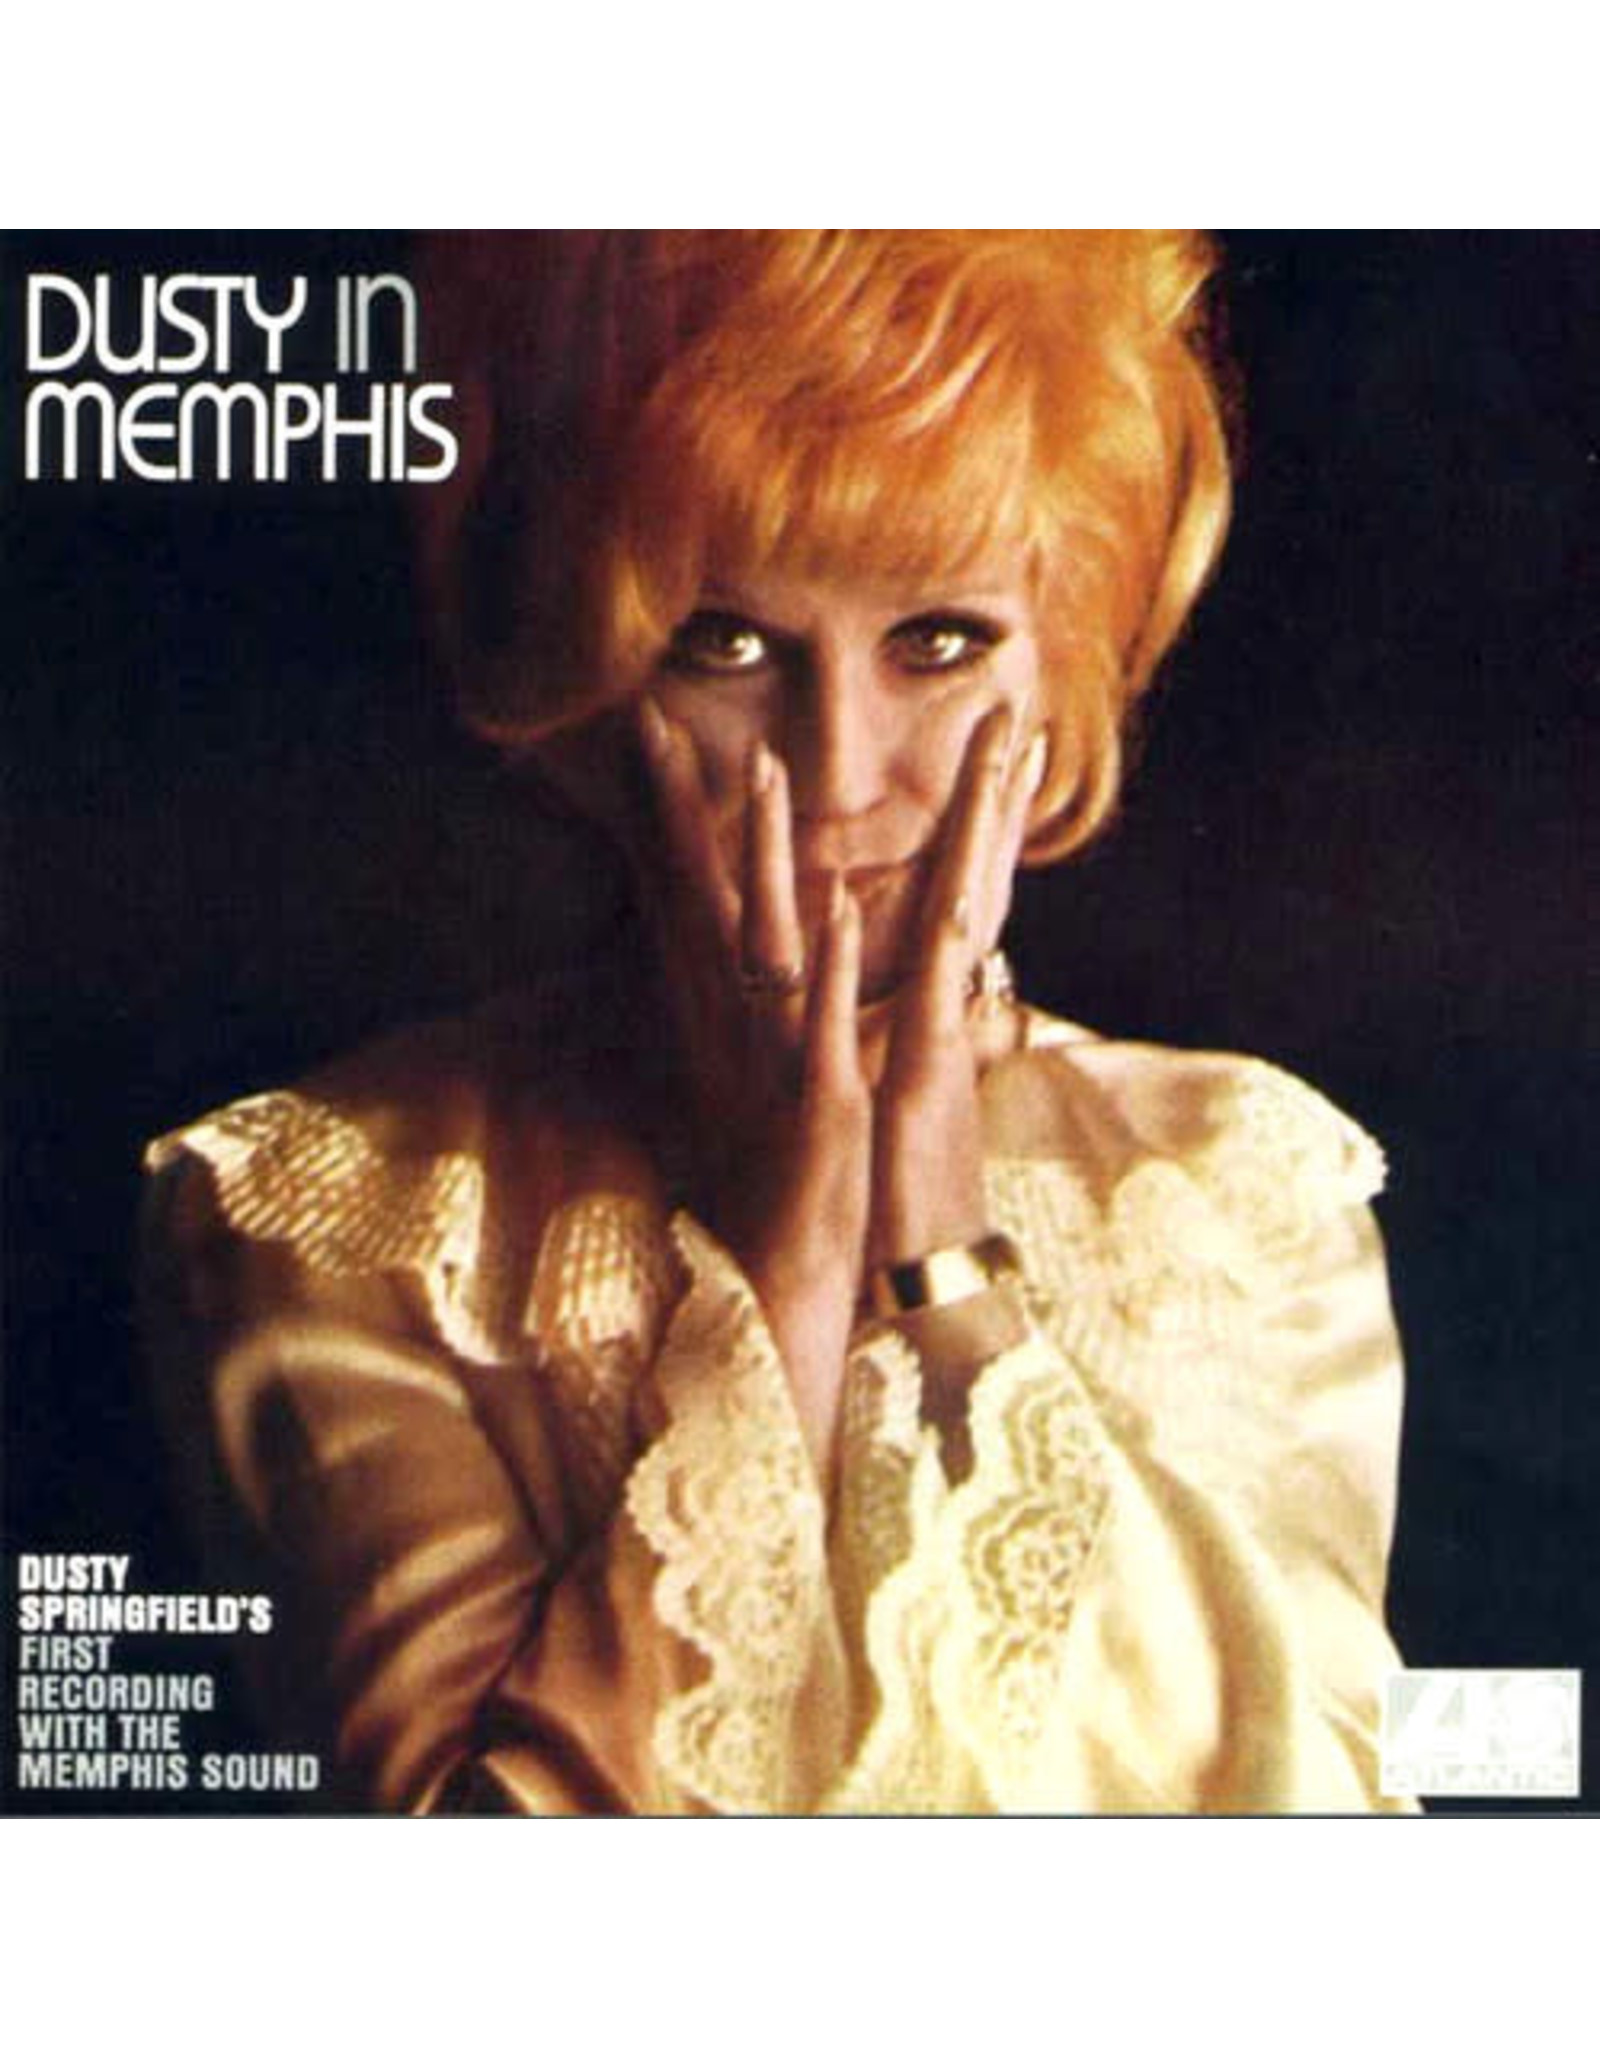 New Vinyl Dusty Springfield - Dusty In Memphis (Expanded) 2LP